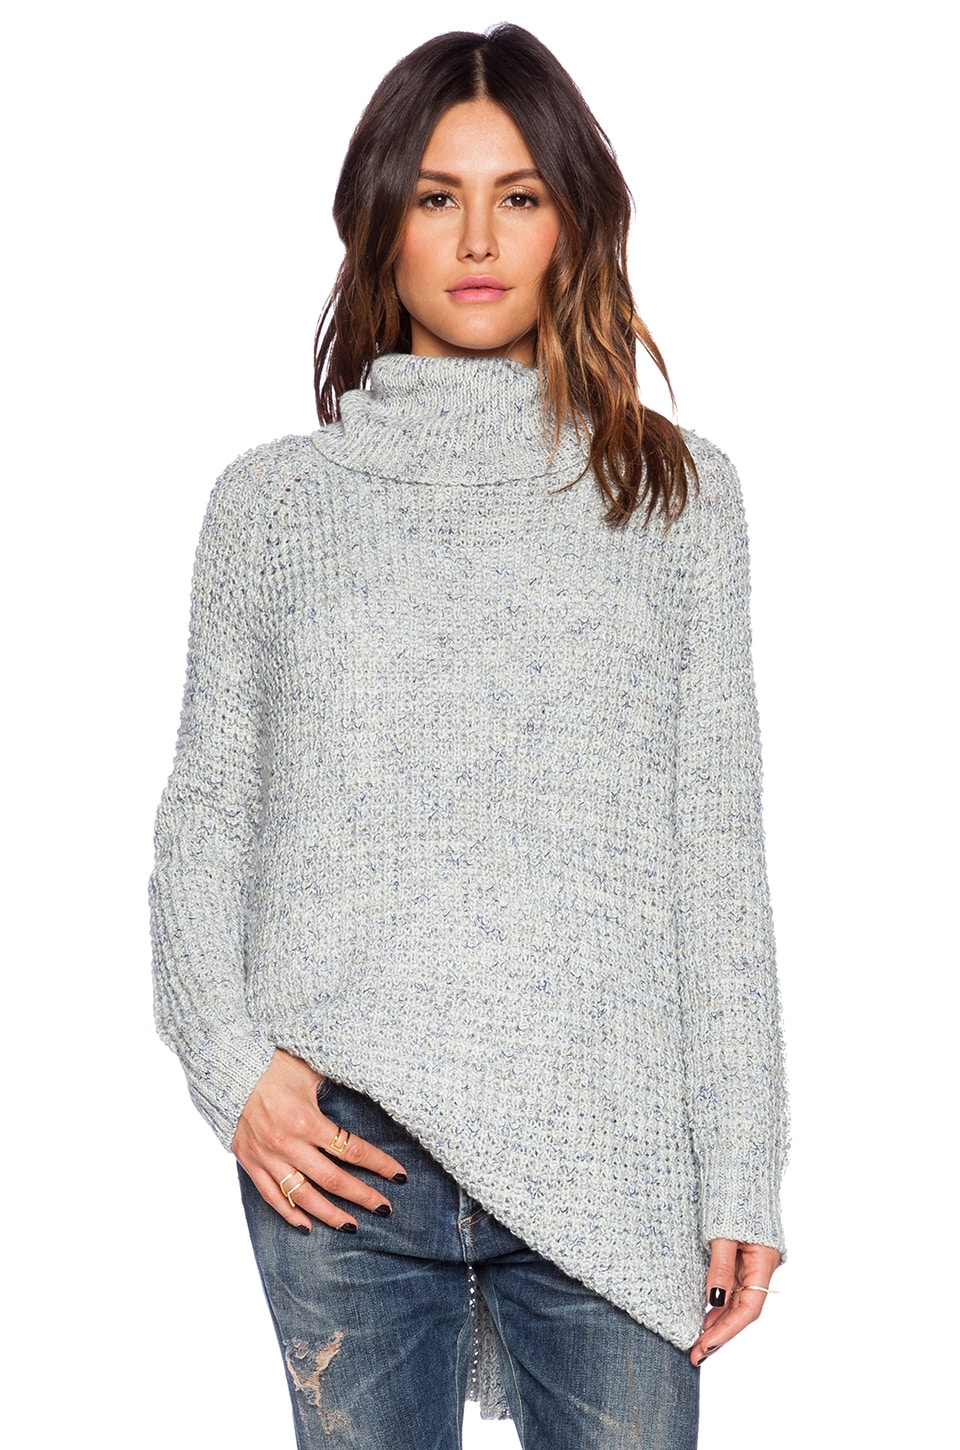 Free People Dylan Tweedy Neck Pullover in Ice Blue Combo